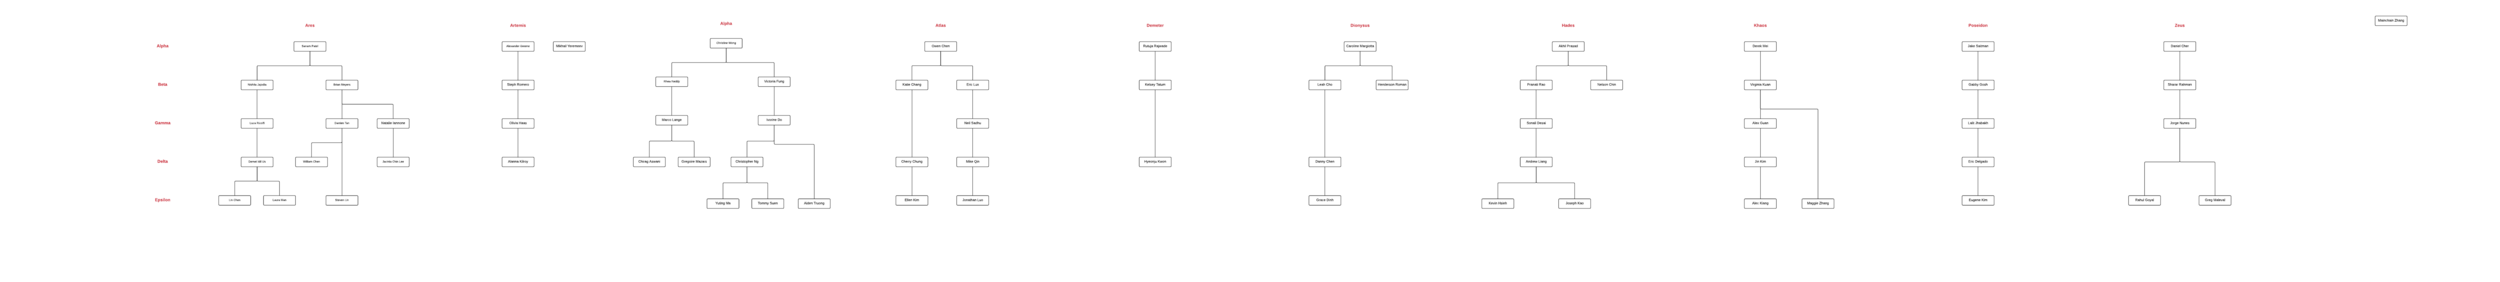 PCT Family Tree - Page 1-2.png